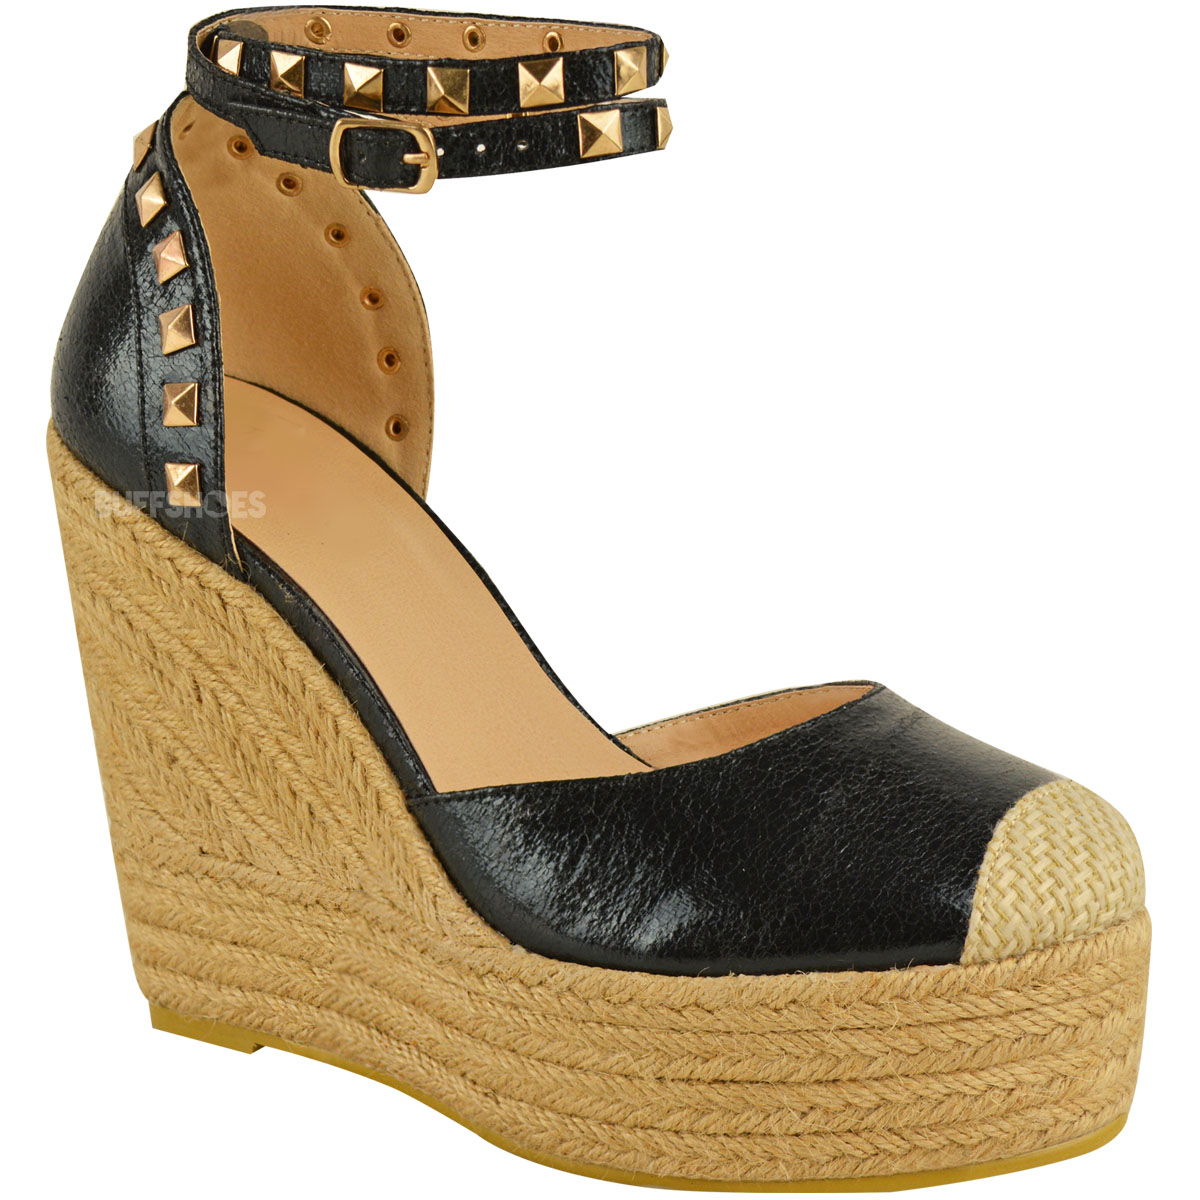 GUESS Womens Size 7.5 Wedge Gold Strappy Cork Wood Wedge